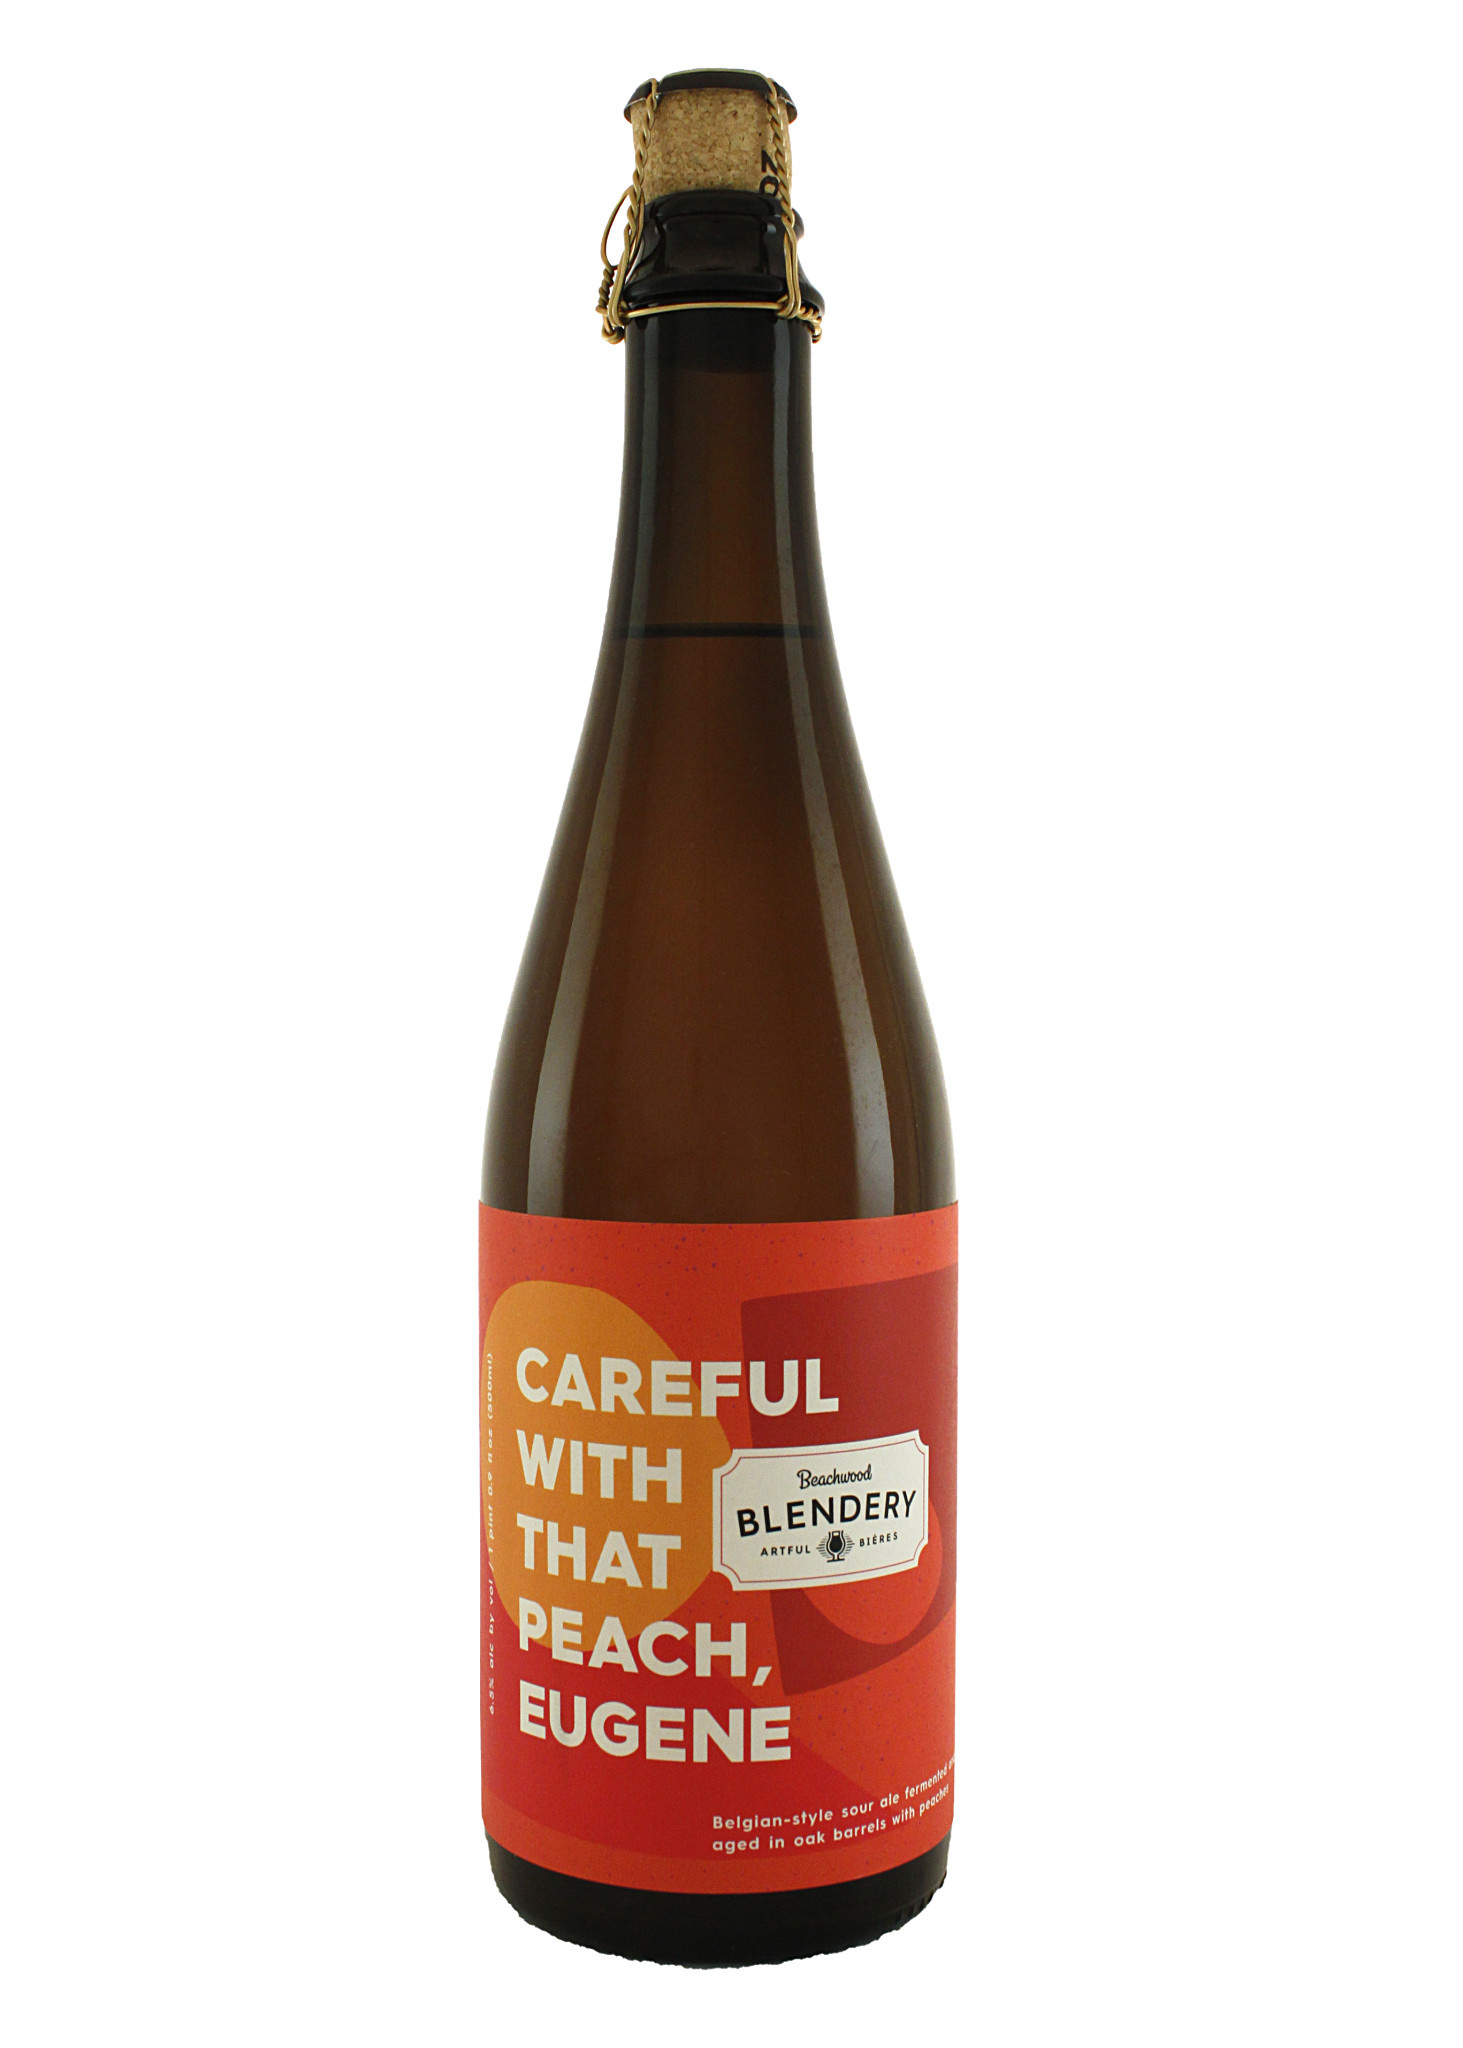 "Beachwood Blendery ""Careful With That Peach, Eugene"" Belgian-Style Sour Ale Aged w/Peaches 500ml Bottle - Long Beach, CA"